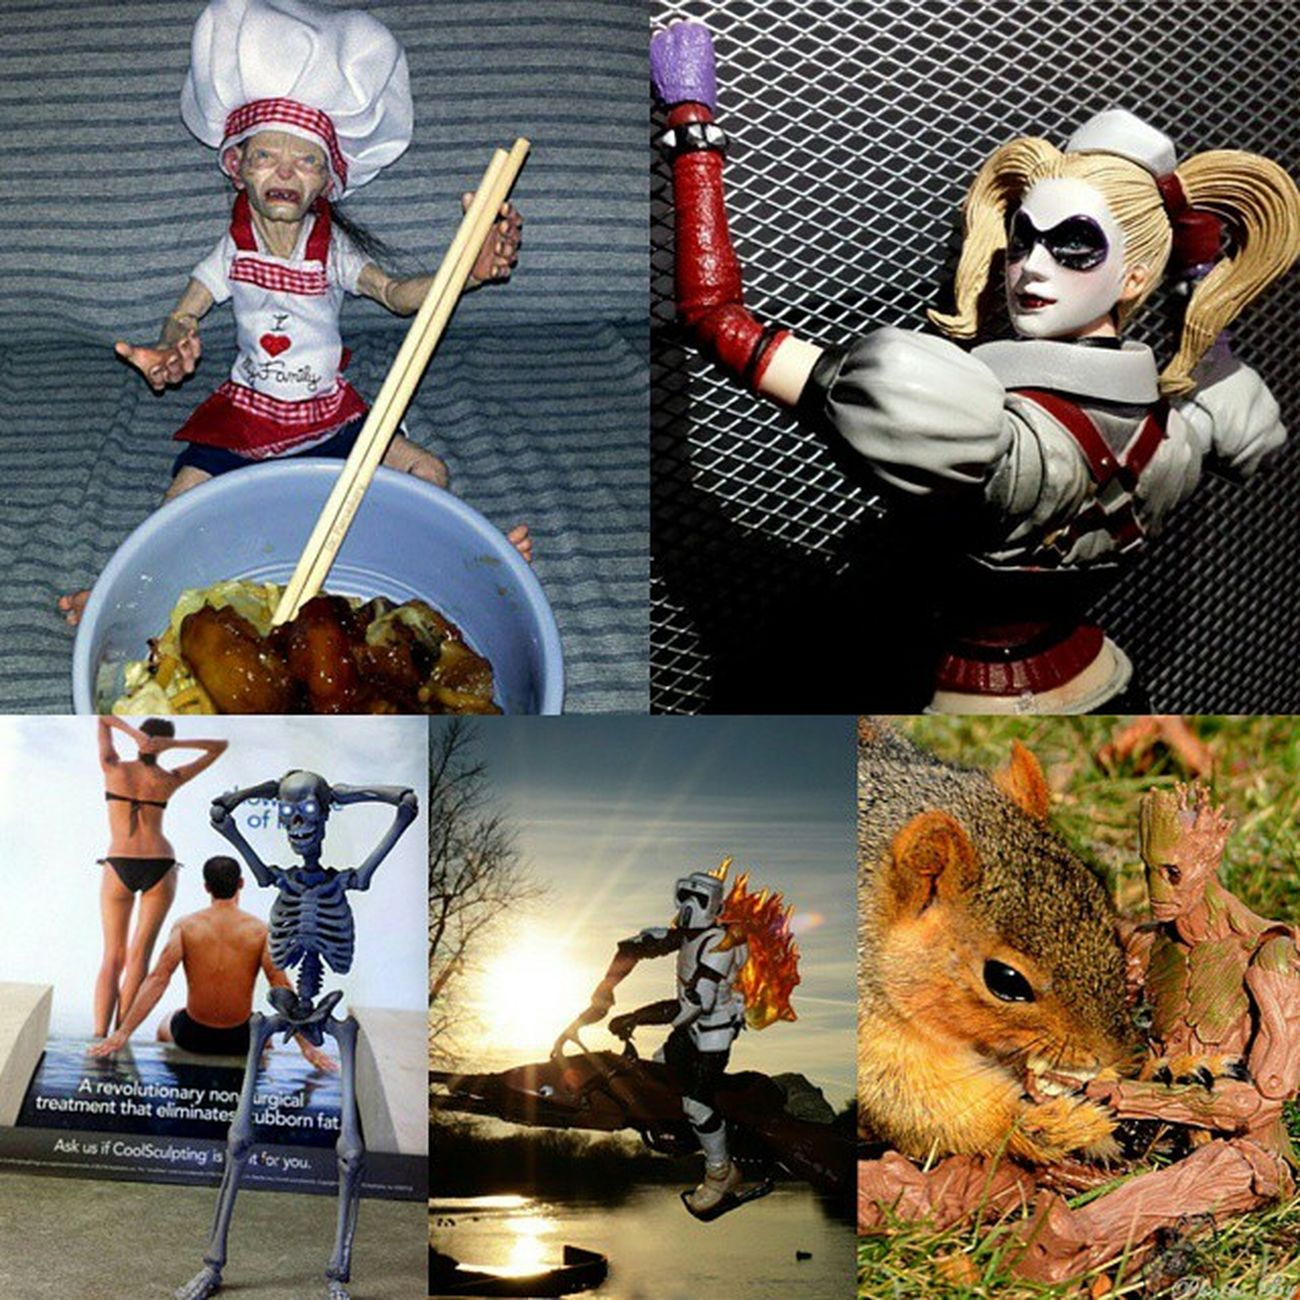 Tagged by the awesome @smacktoys for my Fivefavouritefigures as of right now. -Top left: Neca Gollum, -Top Right: Playarts Harley Quinn, -Bottom Left: Revoltech Skelton, -Bottom Middle: Black Series Scout Trooper, -Bottom Right: BMF Groot . I'll tag @krash_override @pjones714 @mad_phoenix @toysbybrandonman @_sidechops_ if they wanna play along.